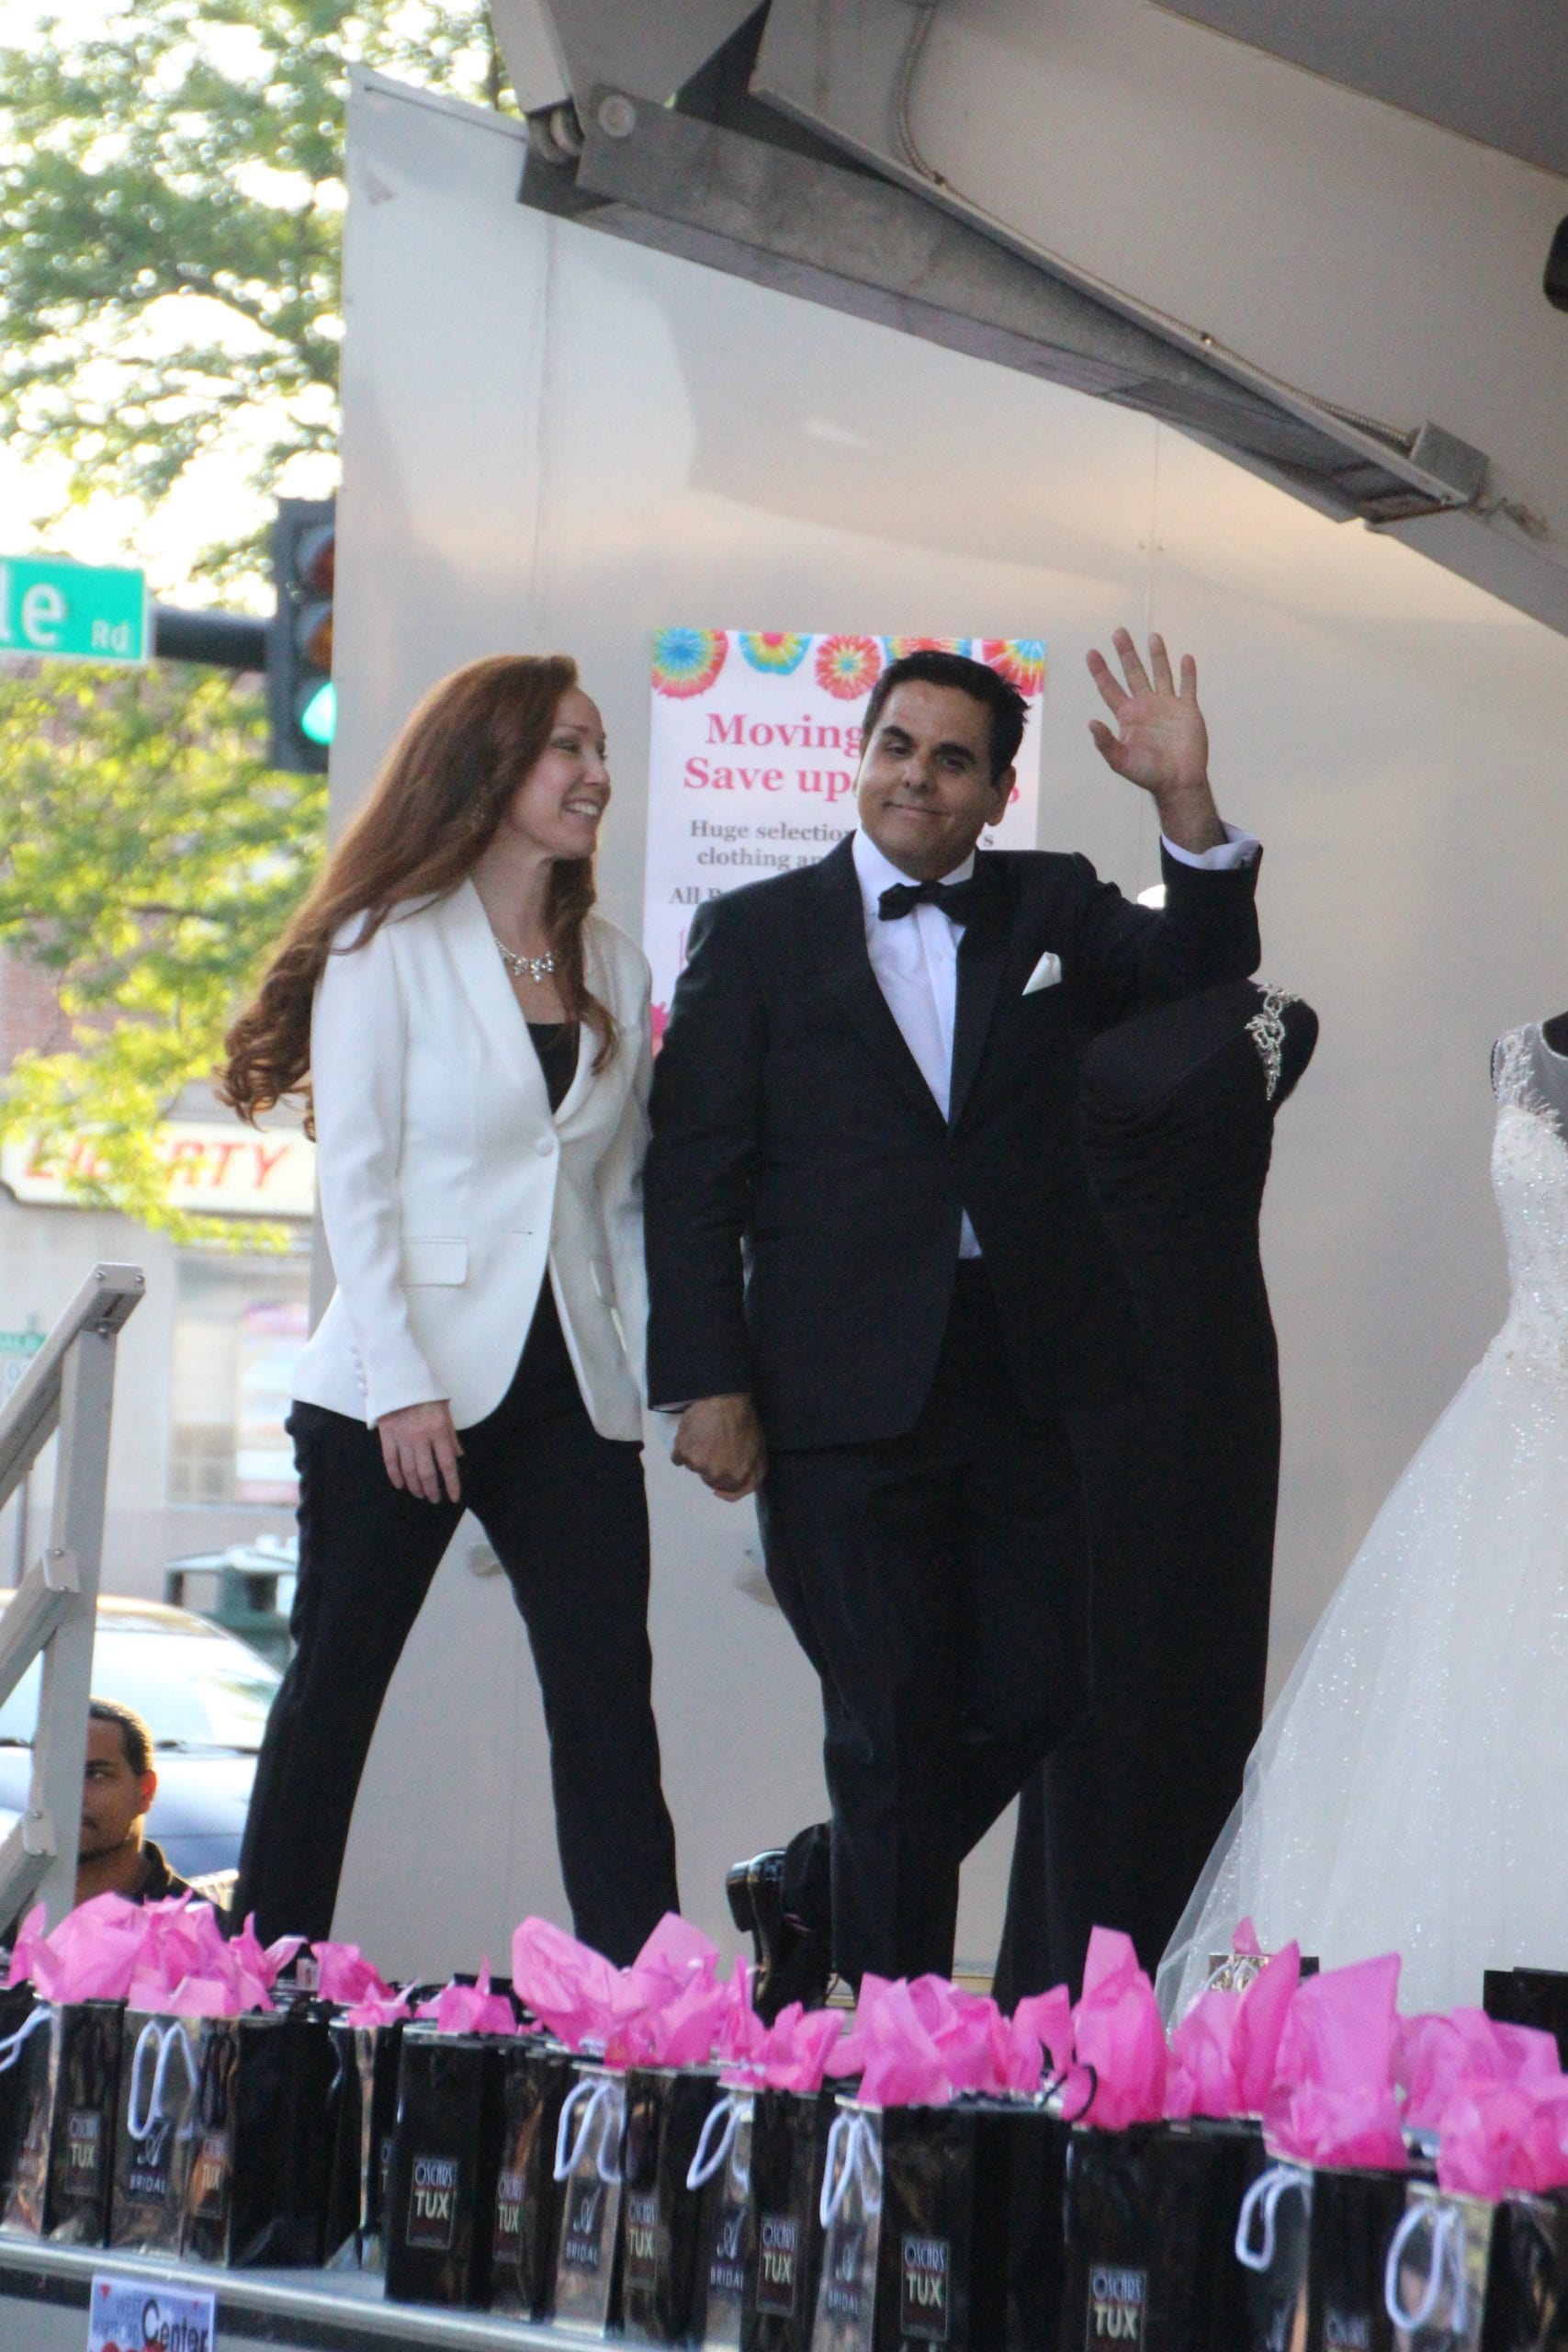 Oscars TUX owners Kelli and Oscar Sosa enter the stage during the Fashion Show in West Hartford Center on the Town of West Hartford Showmobile stage on June 23, 2016. Photo credit: Dylan Carneiro